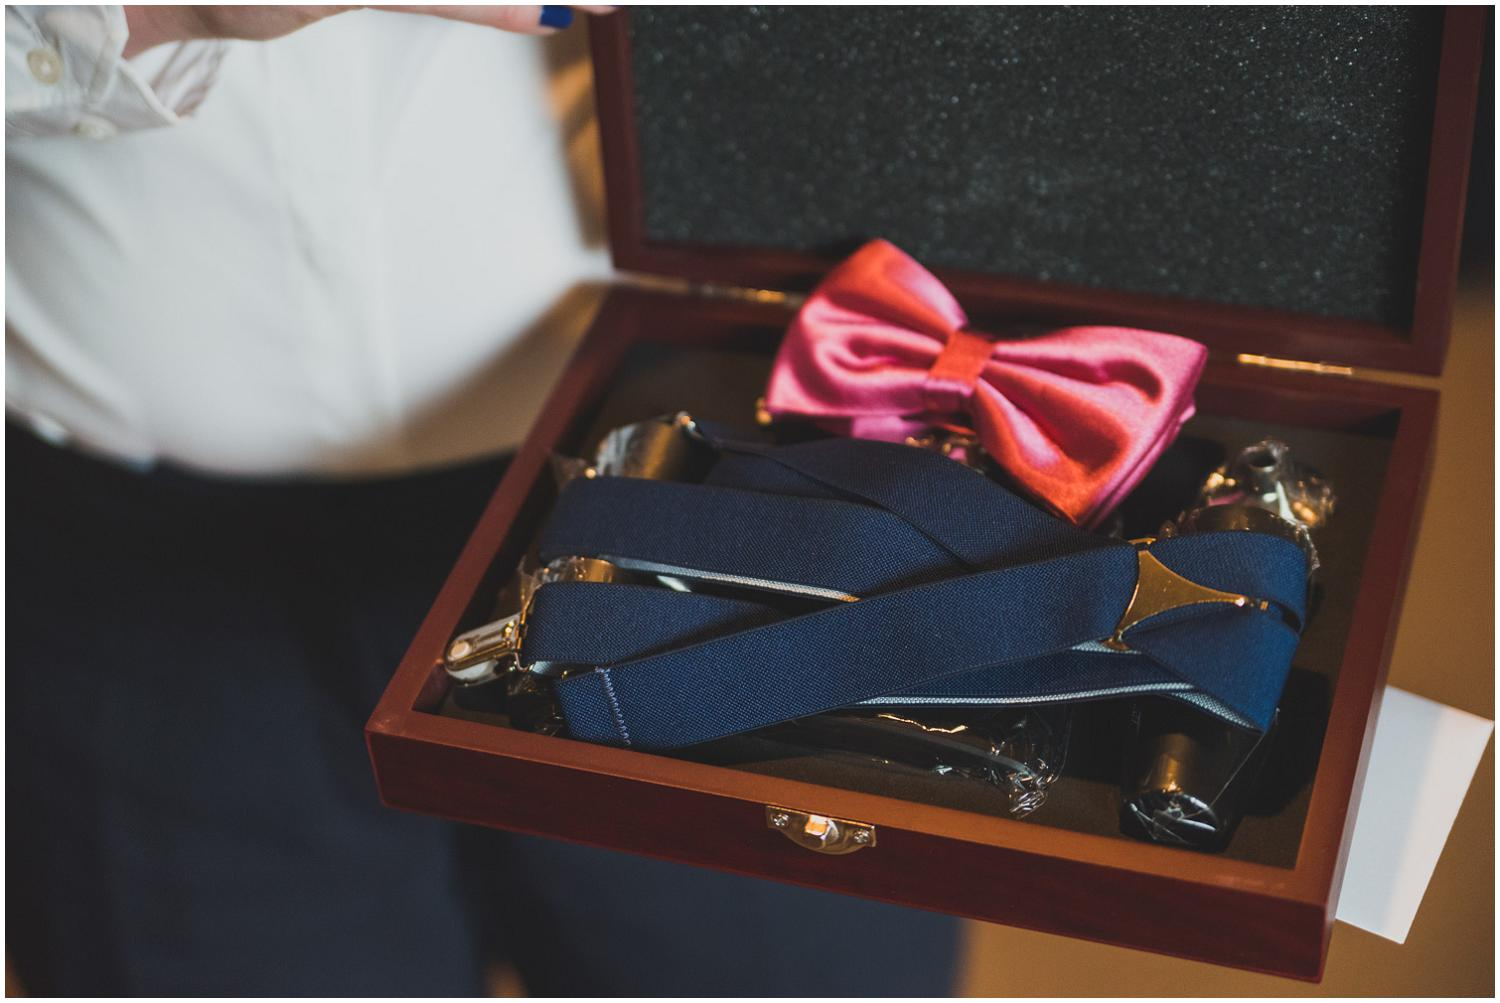 groomsmen gifts: pink bow tie, suspenders, and more in personalized wooden box